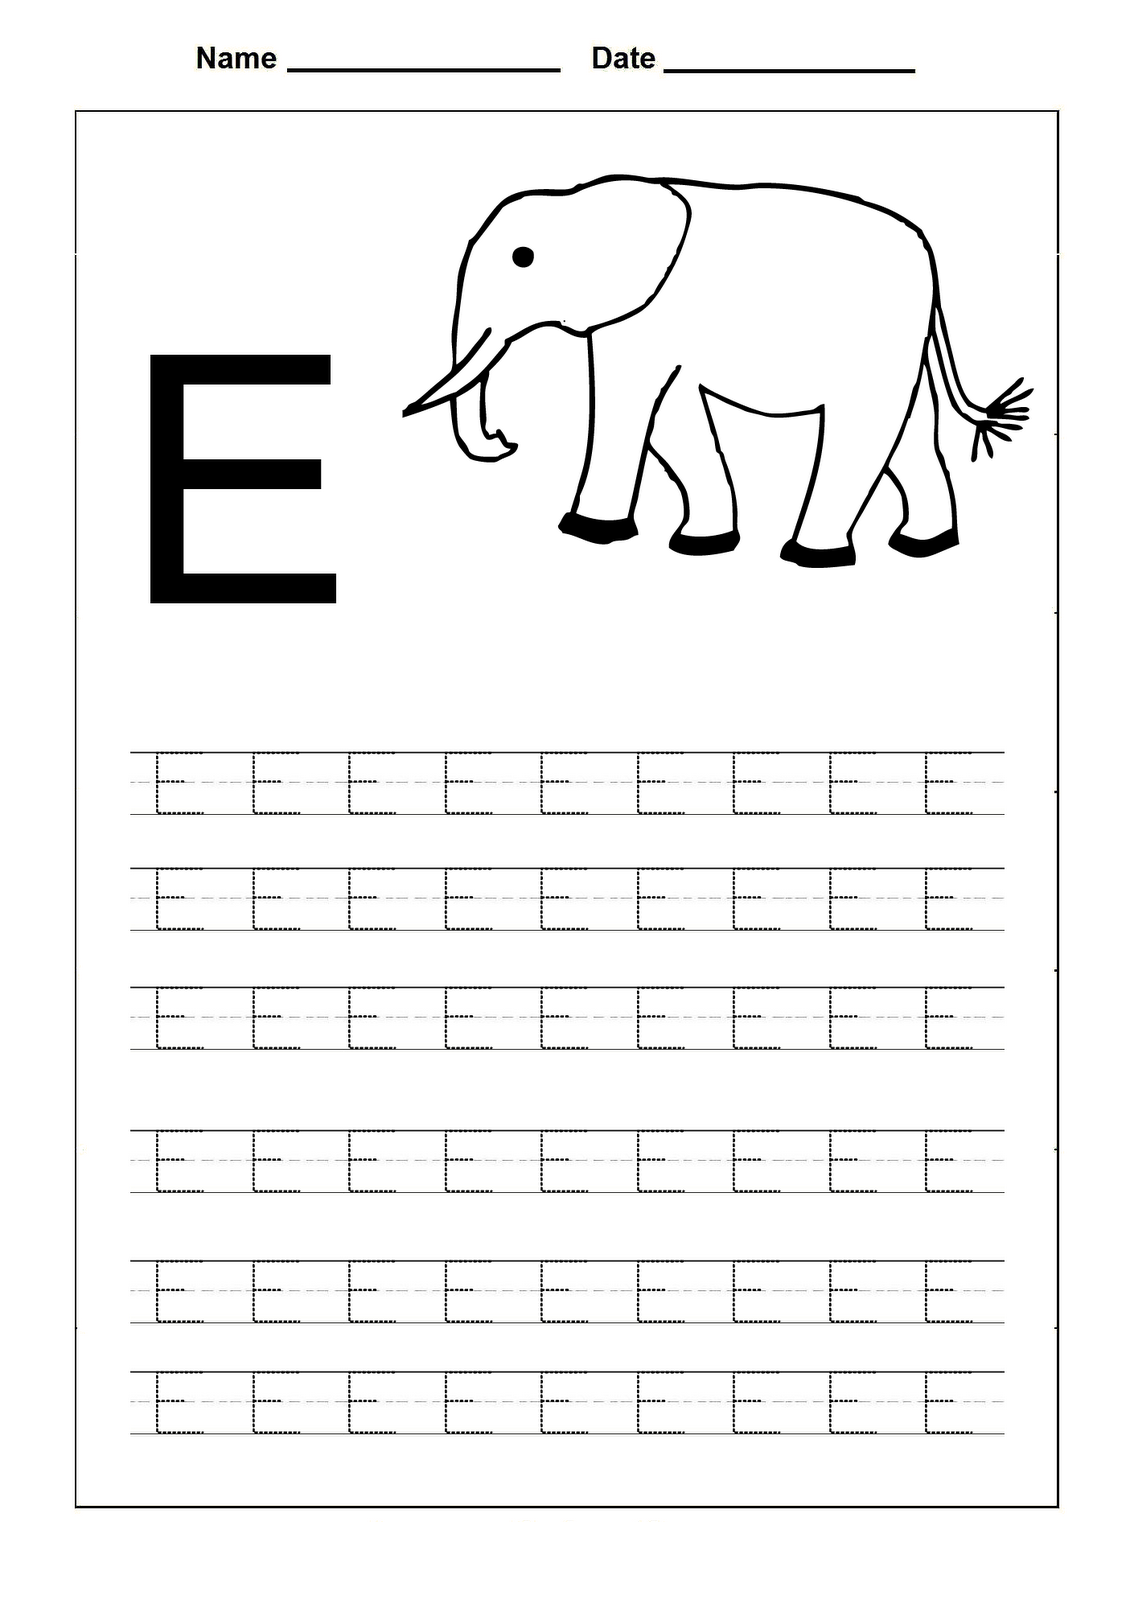 Worksheet Trace Letters trace letters worksheets activity shelter worksheet e